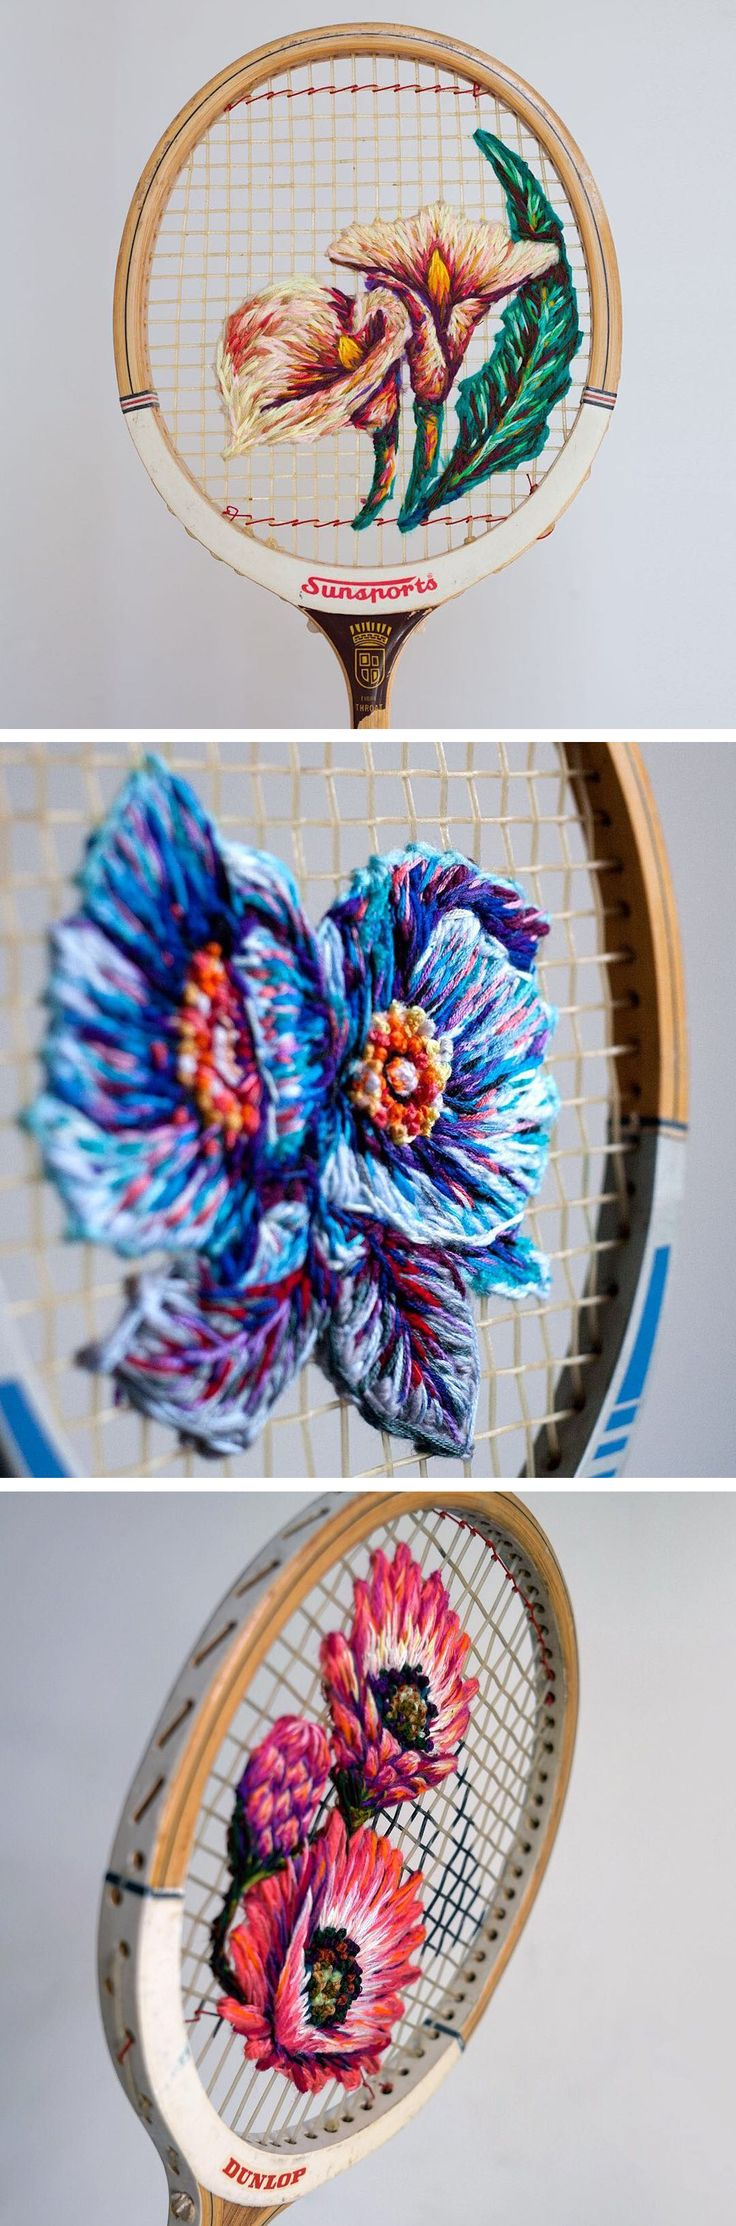 Danielle Clough embroidery on vintage sports racket